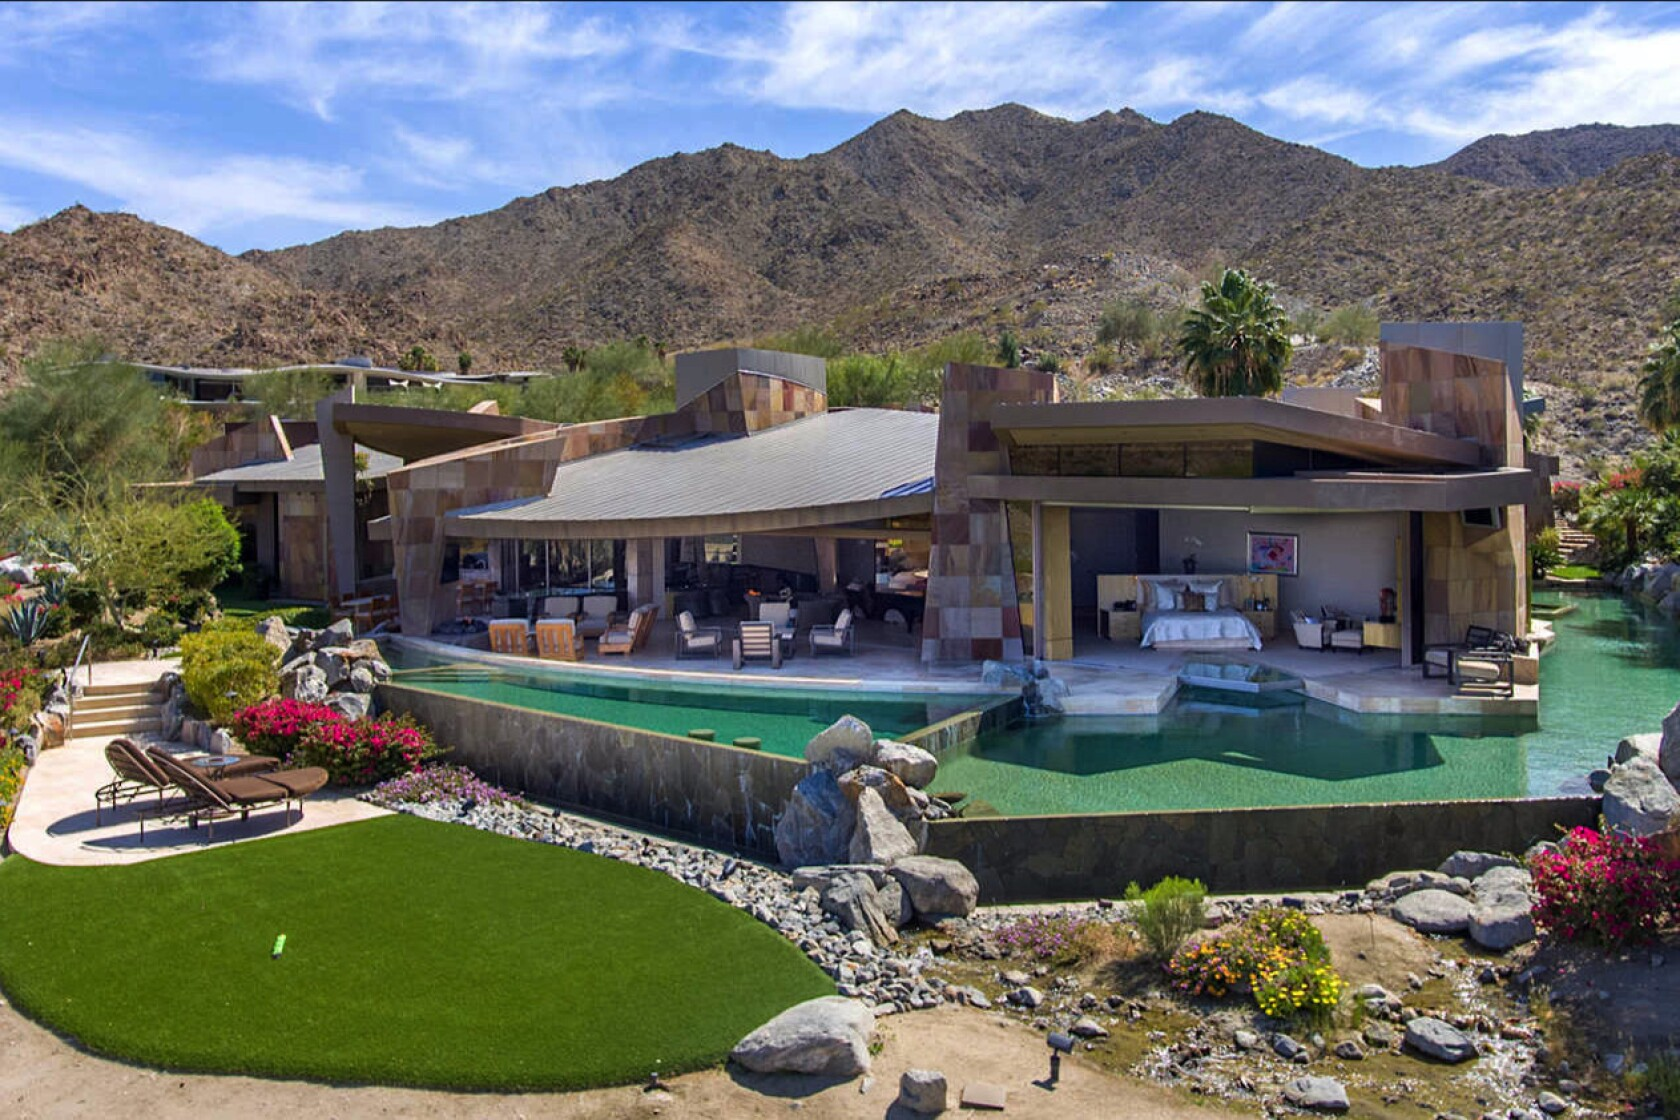 Jerry Weintraub's modern estate in Palm Desert sells for ... on portola valley houses, pleasant hill houses, arroyo grande houses, mendocino houses, buena park houses, barstow houses, hughson houses, ladera ranch houses, twentynine palms houses, wildomar houses, coachella valley houses, lost hills houses, trona houses, fountain valley houses, canoga park houses, prather houses, sanger houses, salinas houses, los osos houses, sonoma county houses,